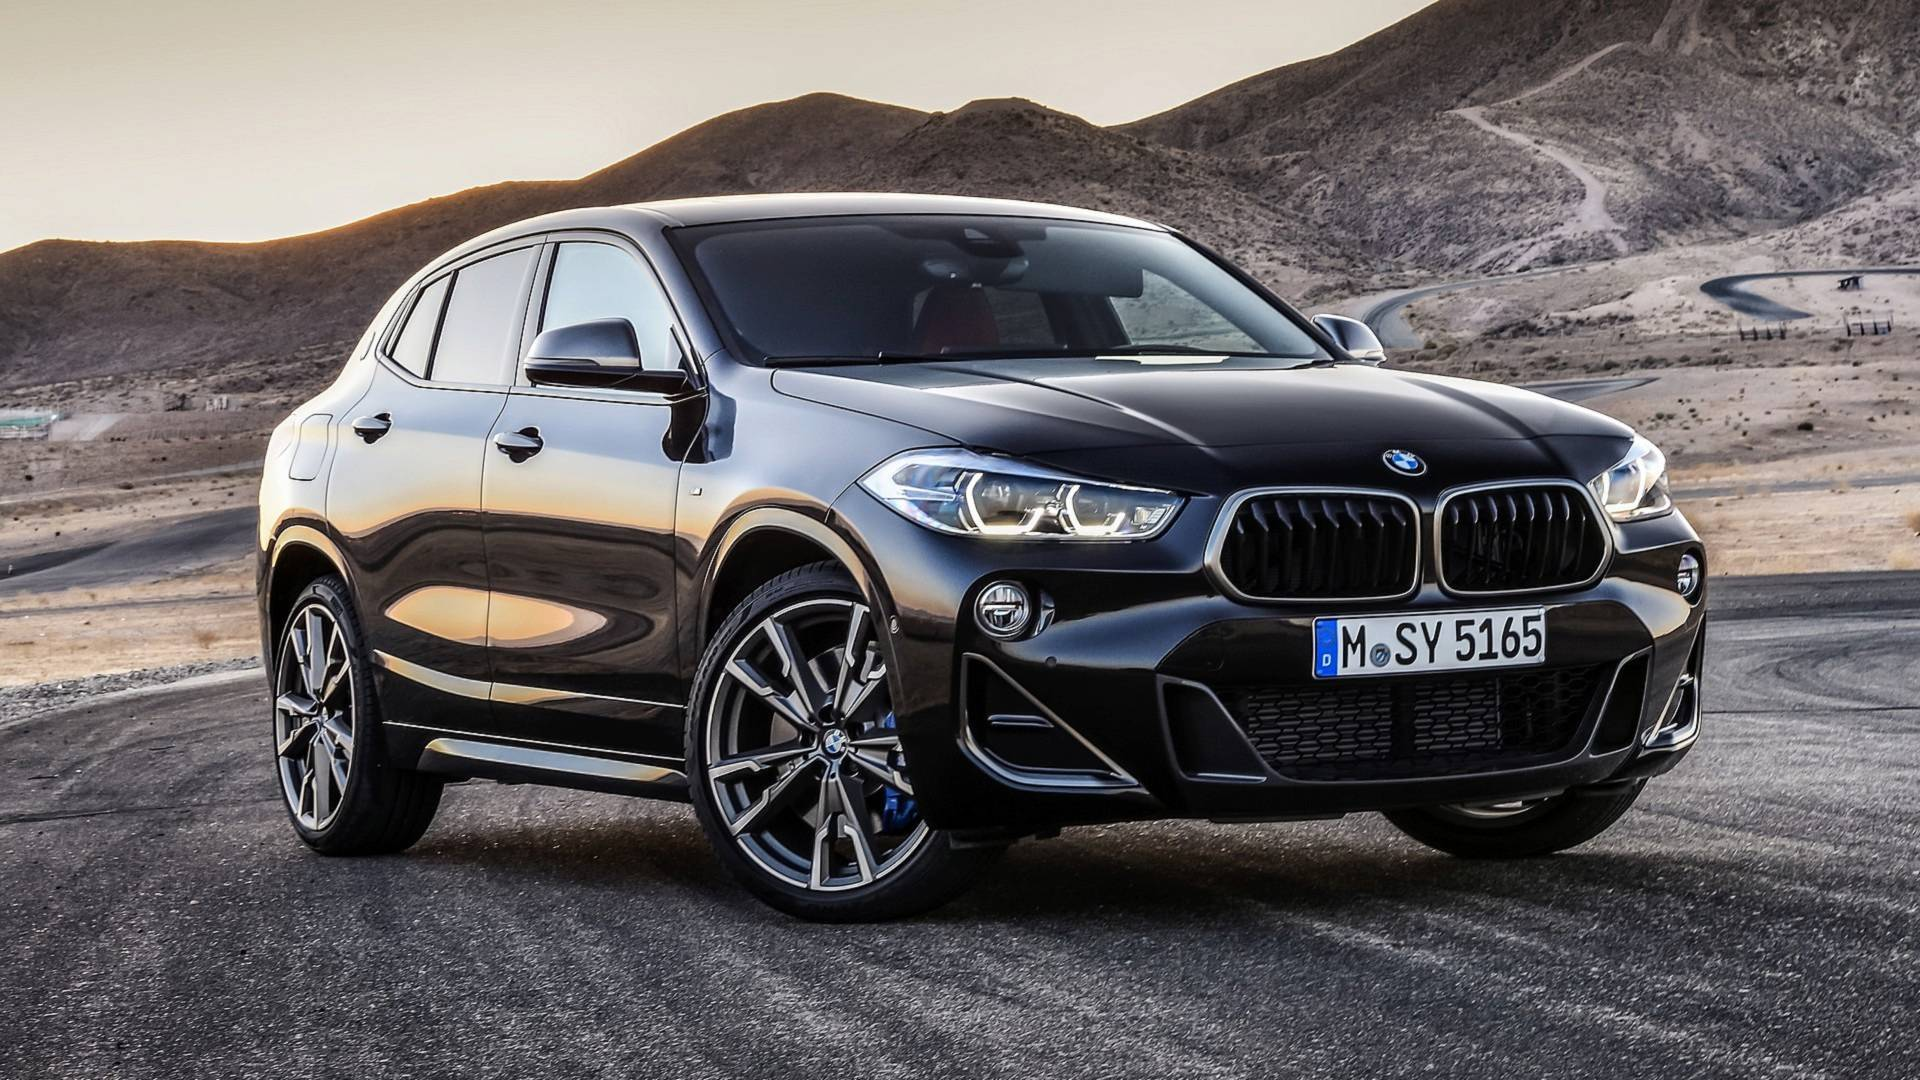 Image search result for x2 bmw